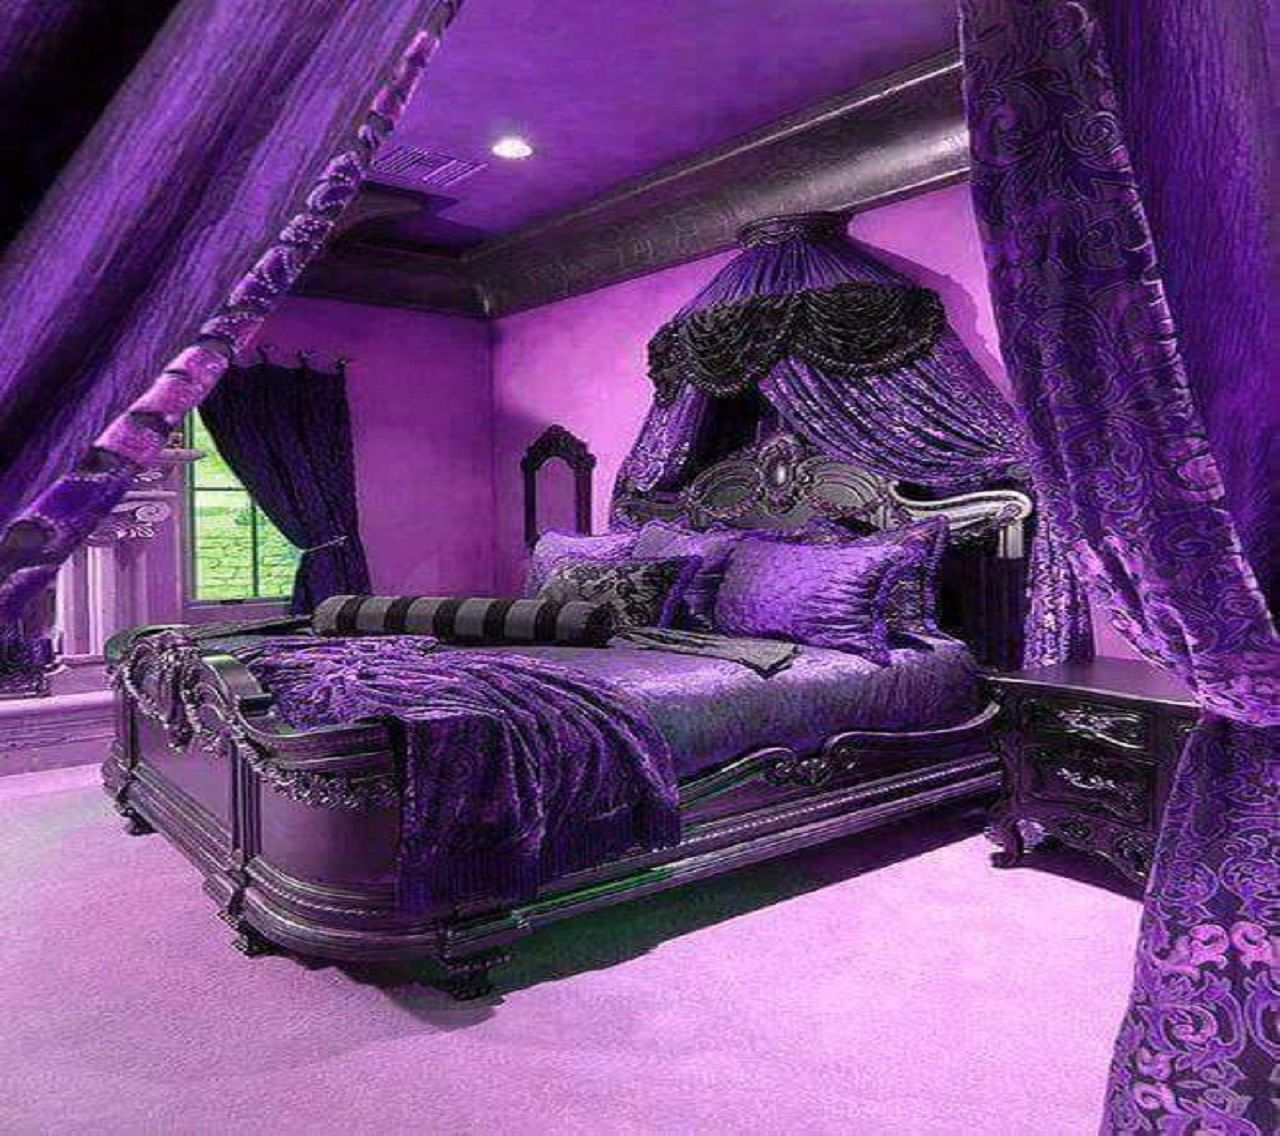 Int purple bedroom med episodeinteractive episode size 1280 x 1136 episodeourcrazylovelife Royal purple master bedroom